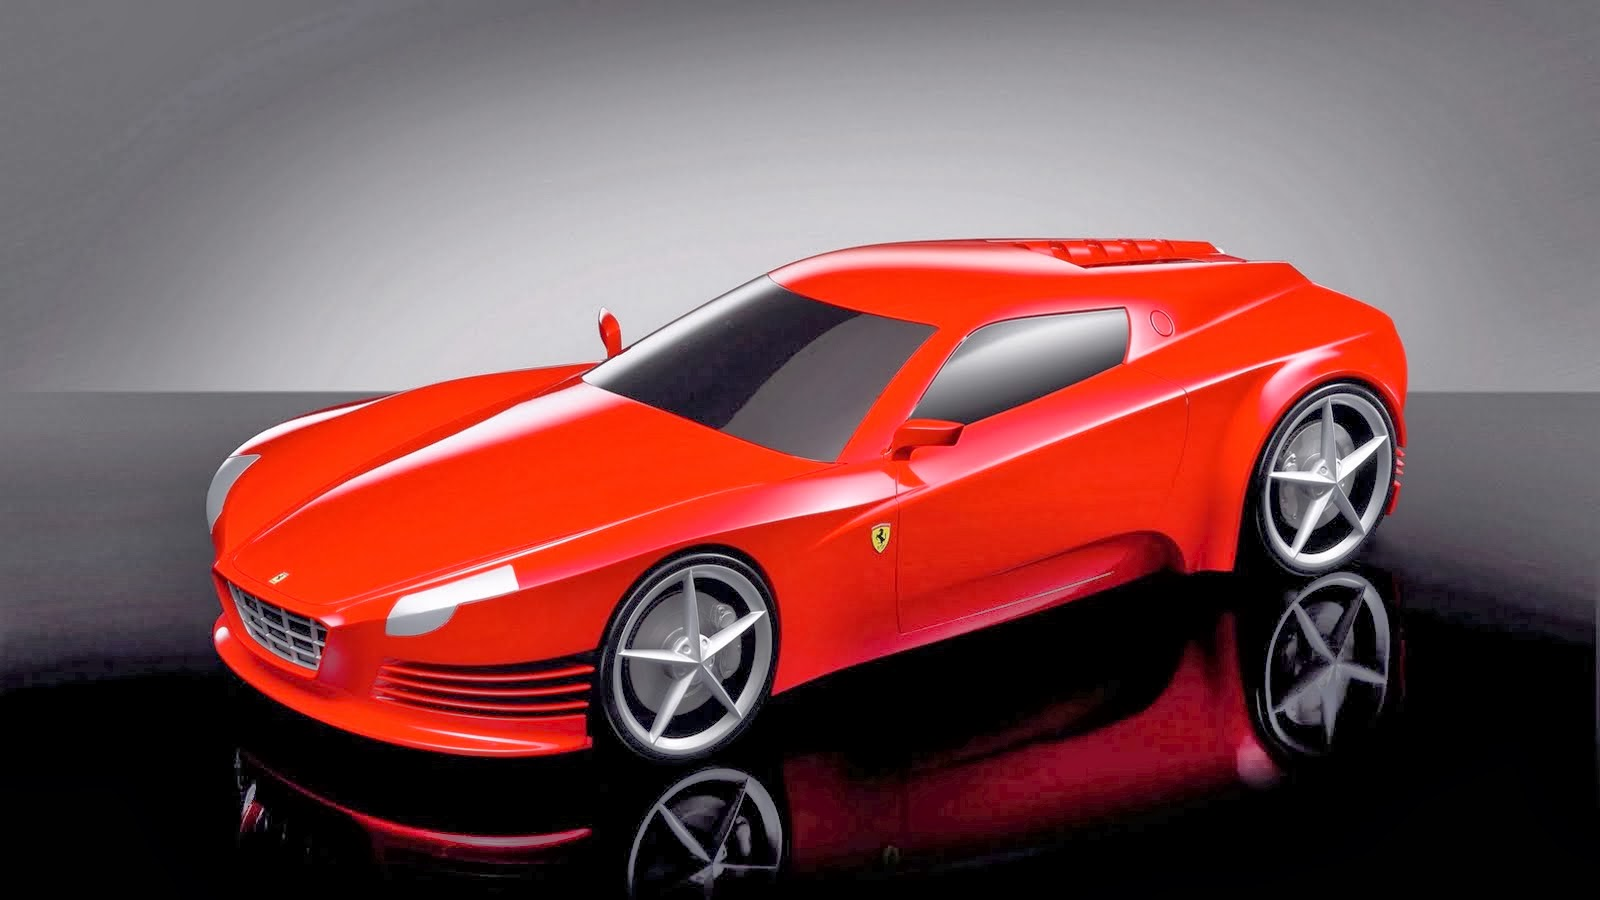 HD Wallpapers Mela Beautiful Cars Wallpapers 2014 1600x900